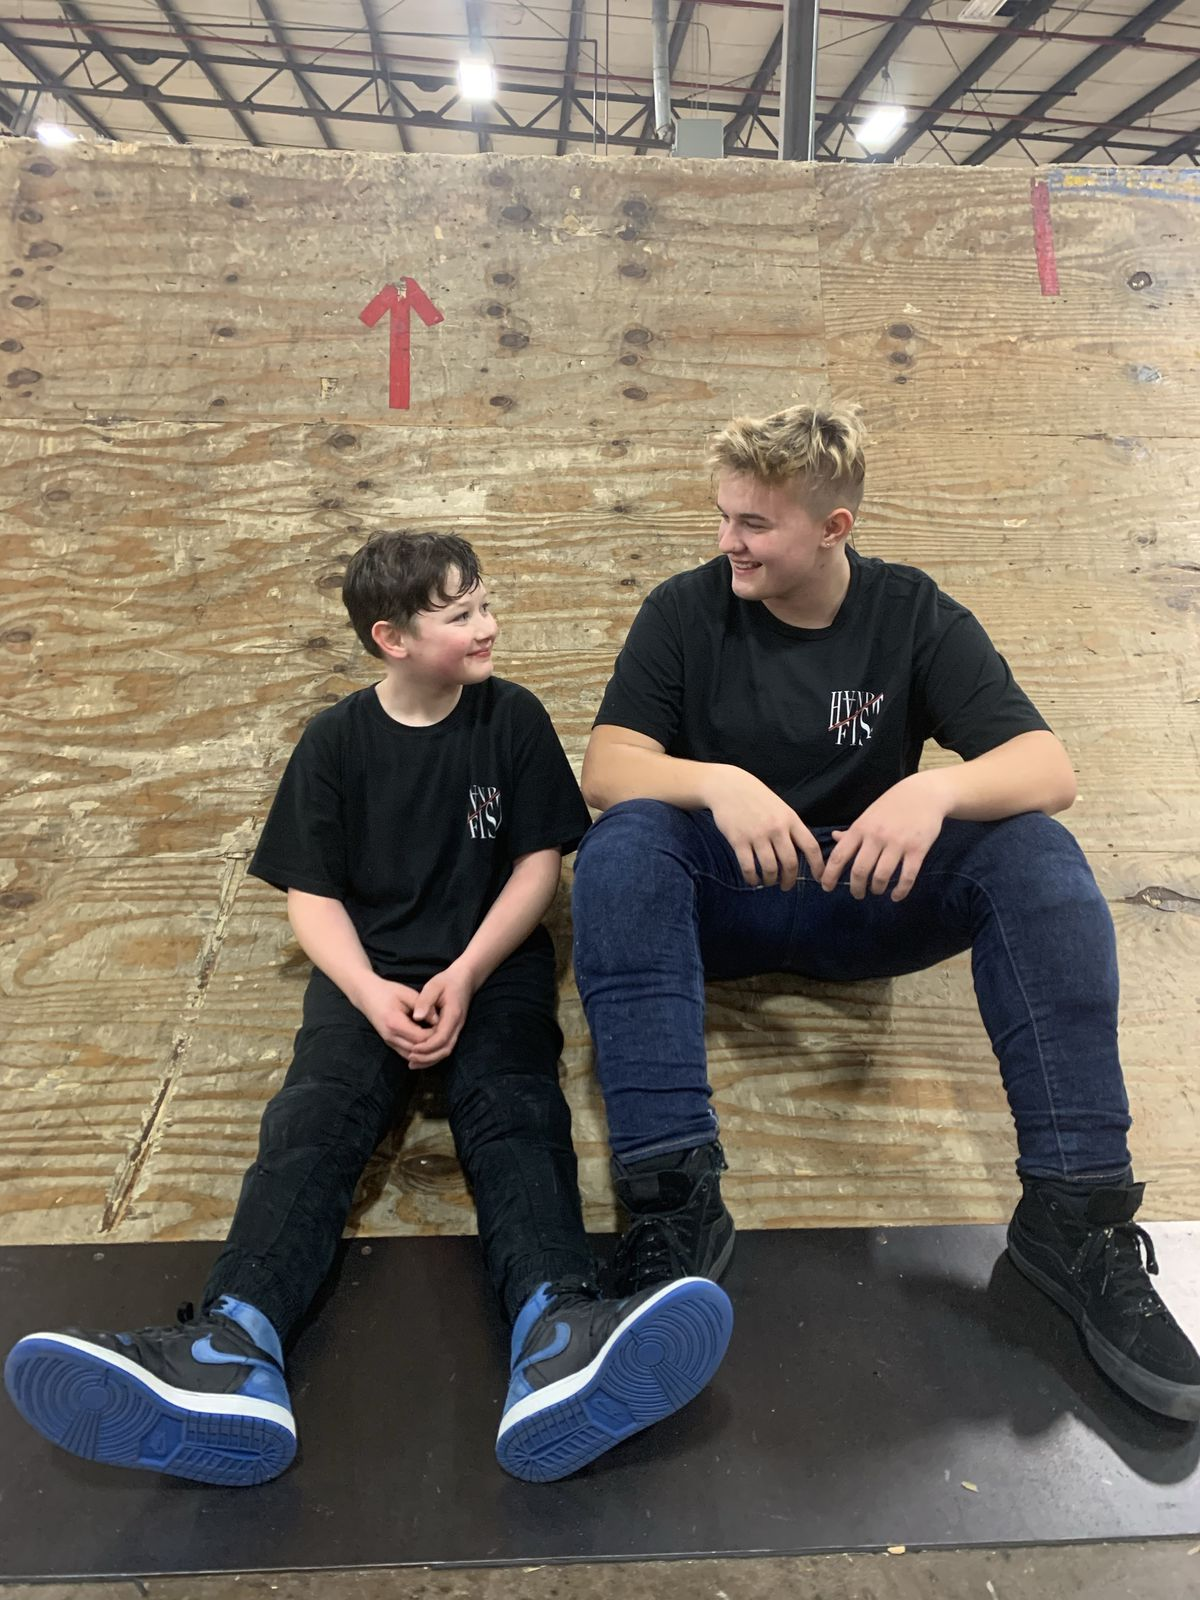 Hannah Roberts and a young boy looking at each other and smiling. They are willing black t-shirts and skateboarding shoes, and sitting on a wooden ramp inside a warehouse-type building.